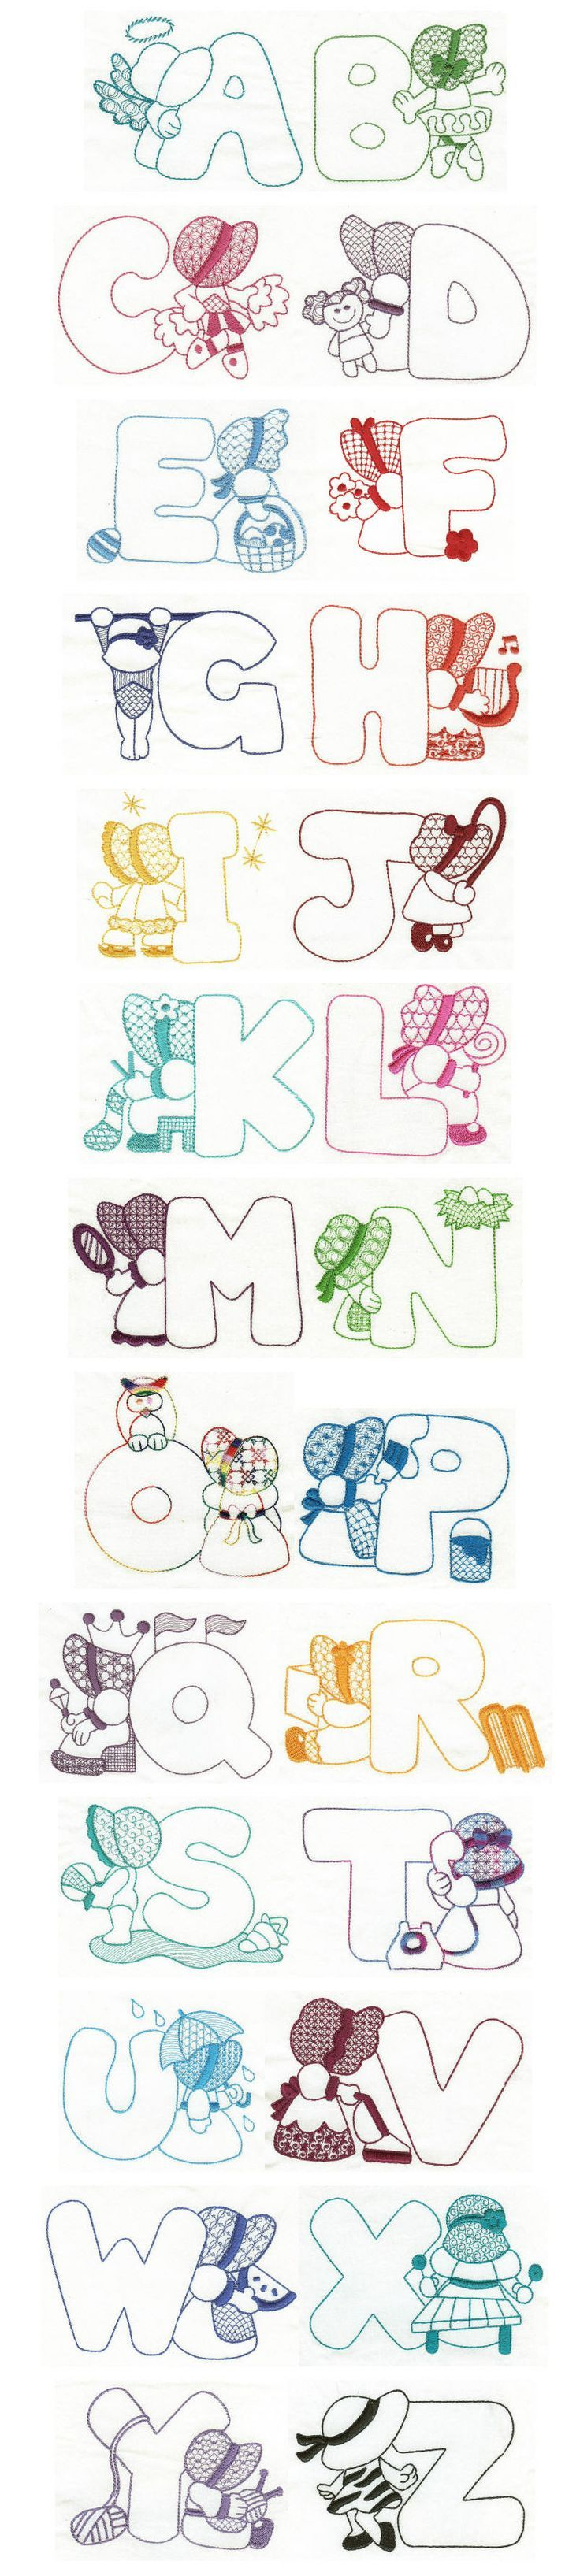 Embroidery free machine designs sunbonnet